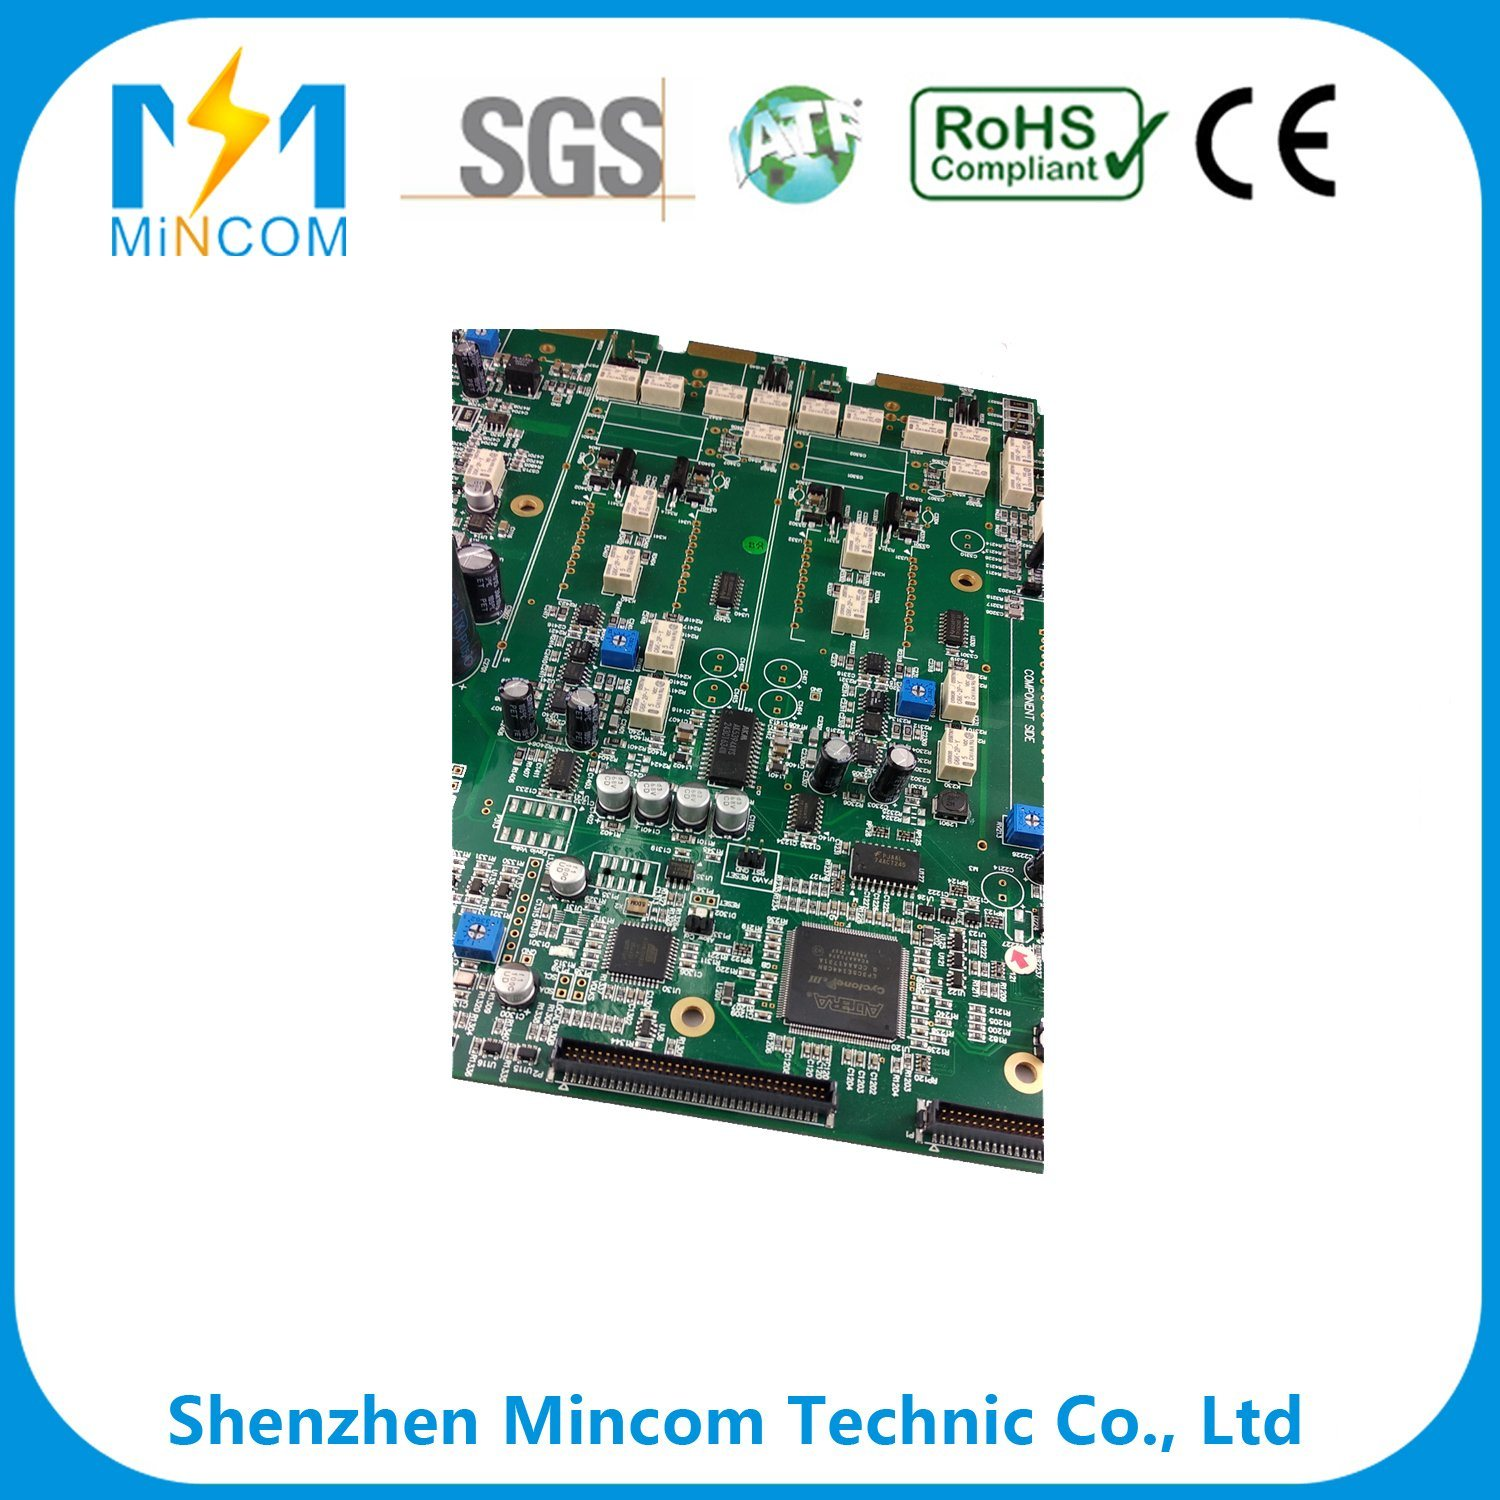 China Metal Core Pcb Manufacturers Suppliers Made Aluminum Printed Circuit Board Led Making For Ceiling Lighting